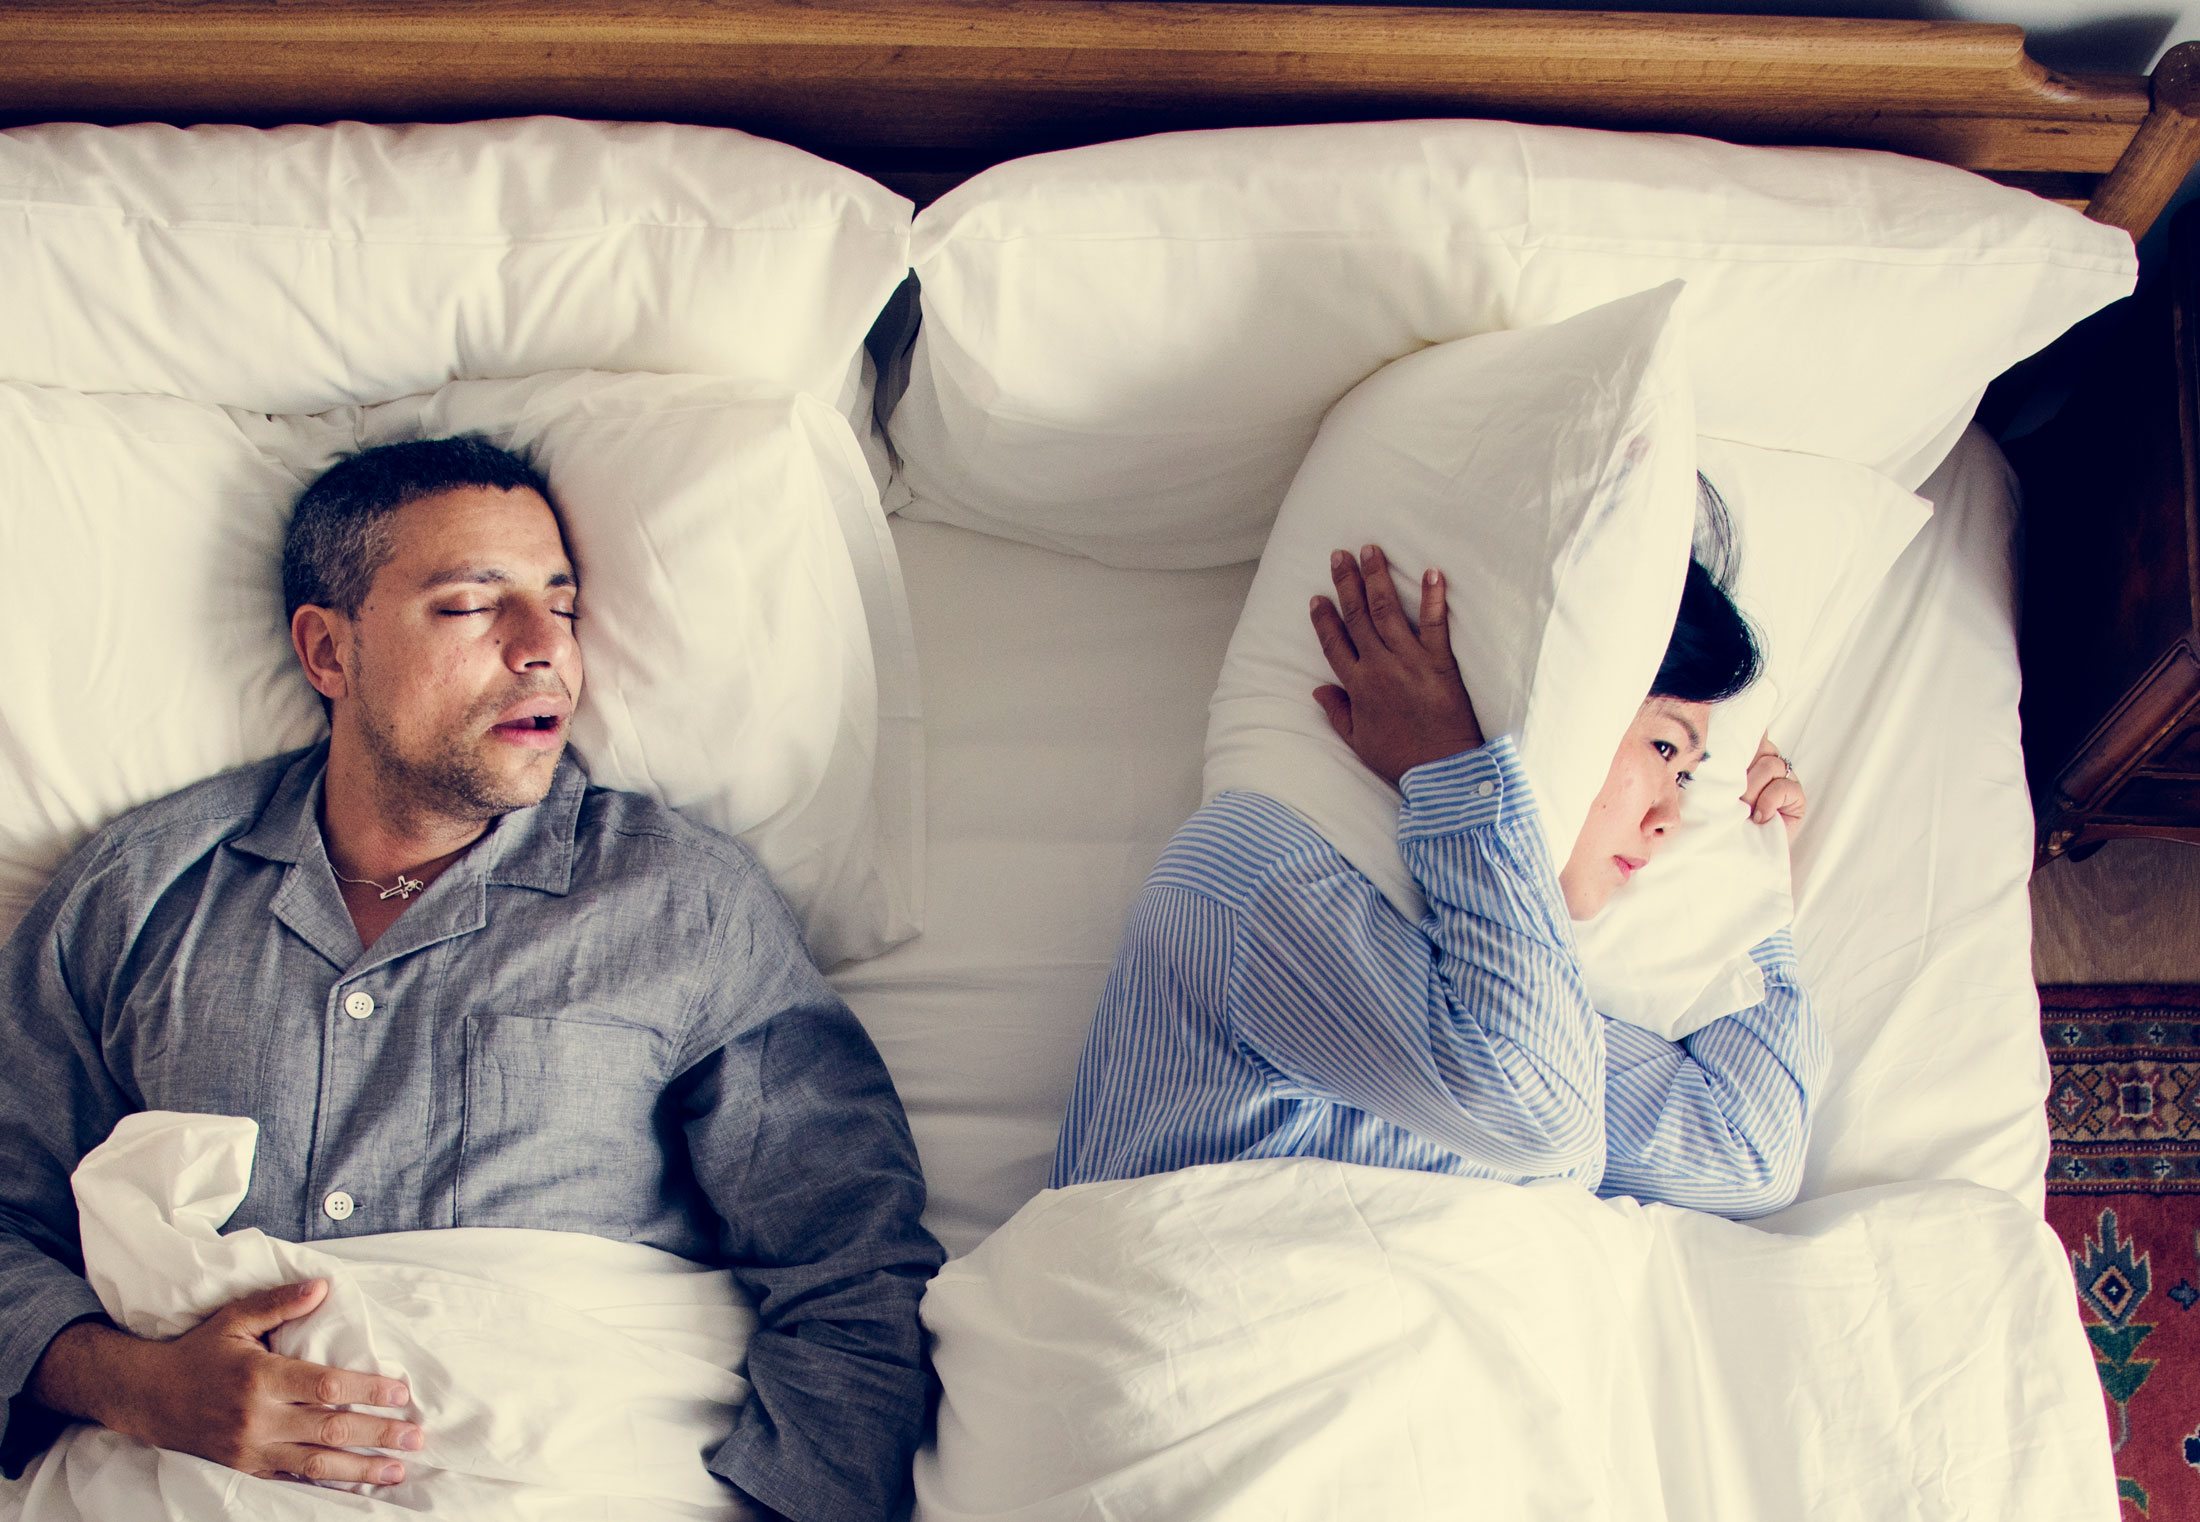 snoring can be a sign of sleep apnea, which can sometimes be treated by a dental appliance